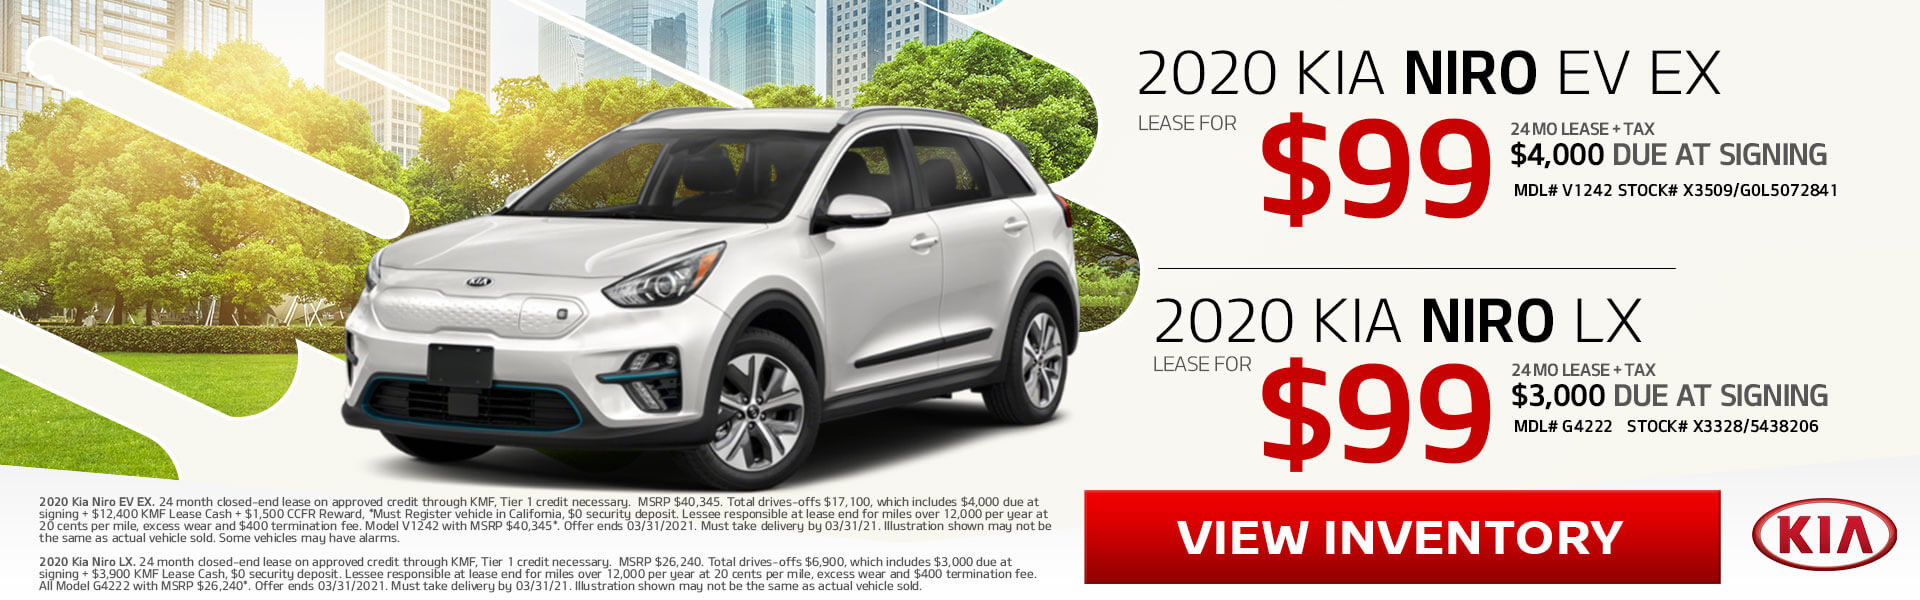 Kia Niro Double Deal